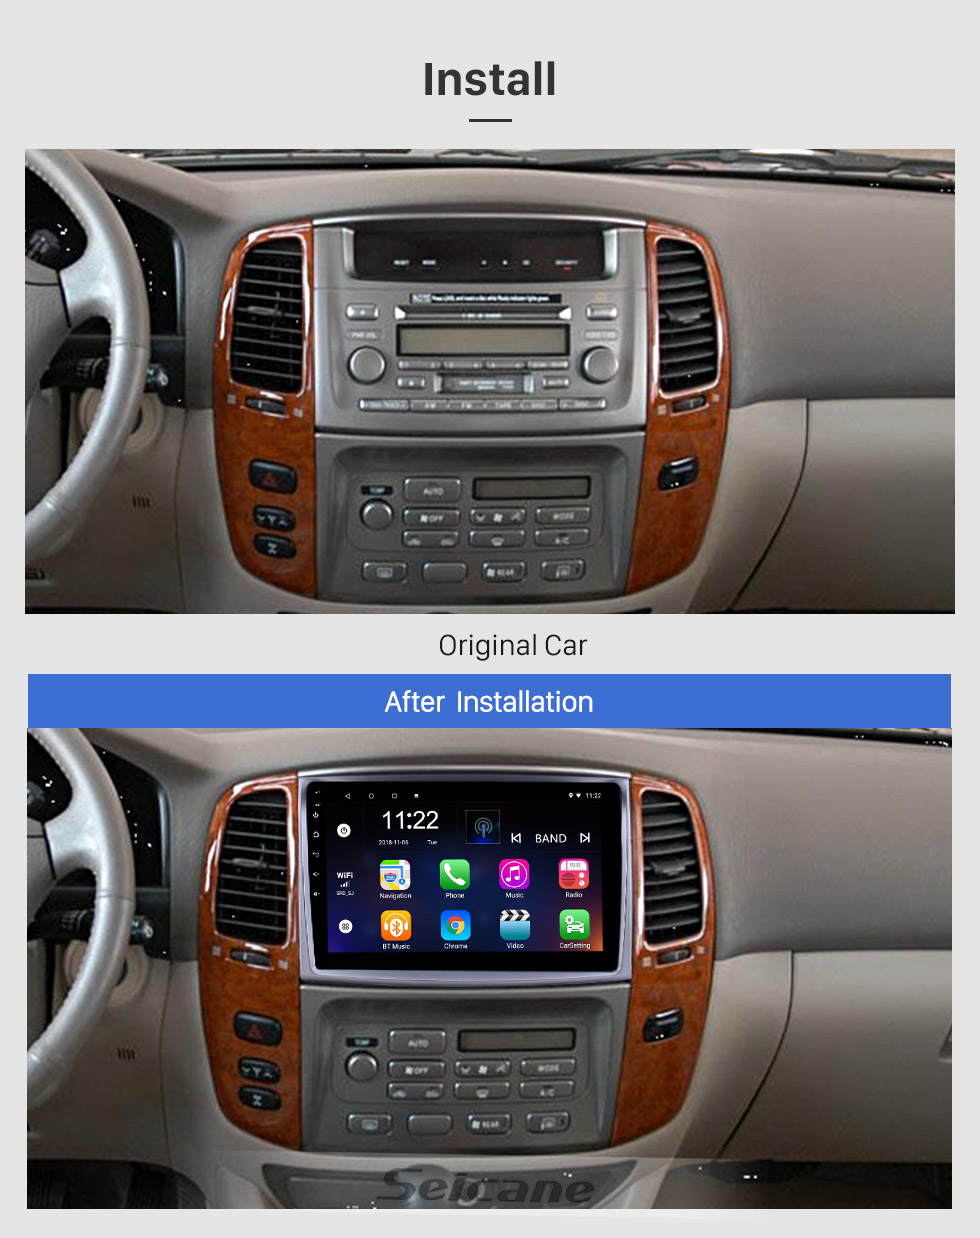 Seicane 10,1 pouces Android 8.1 Radio de navigation GPS pour 2006 Toyota Cruiser avec support tactile Bluetooth HD USB Carplay TPMS